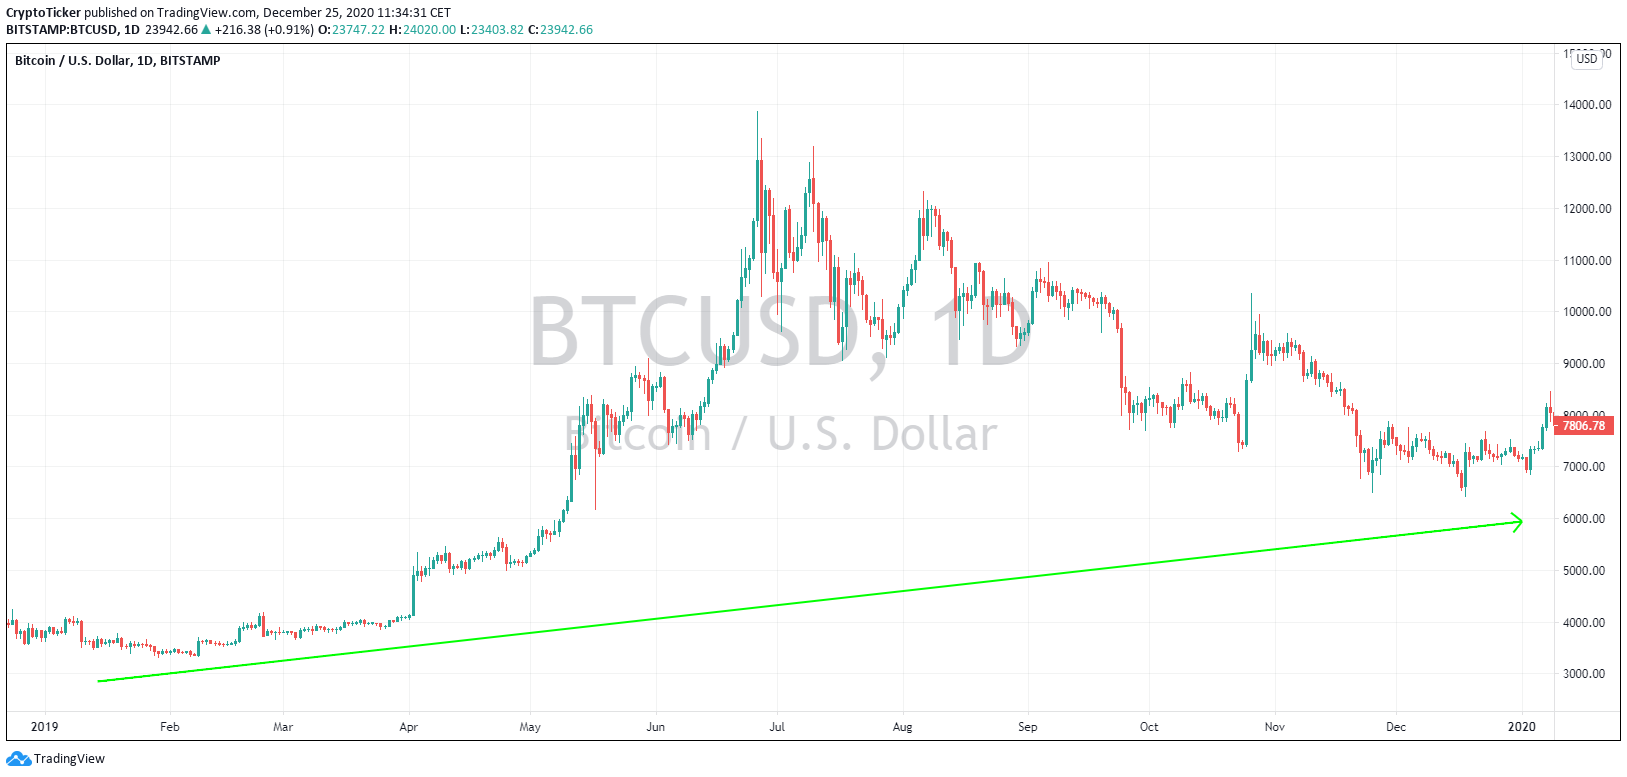 BTC/USD 1-Day chart, Flashback to the year of 2019